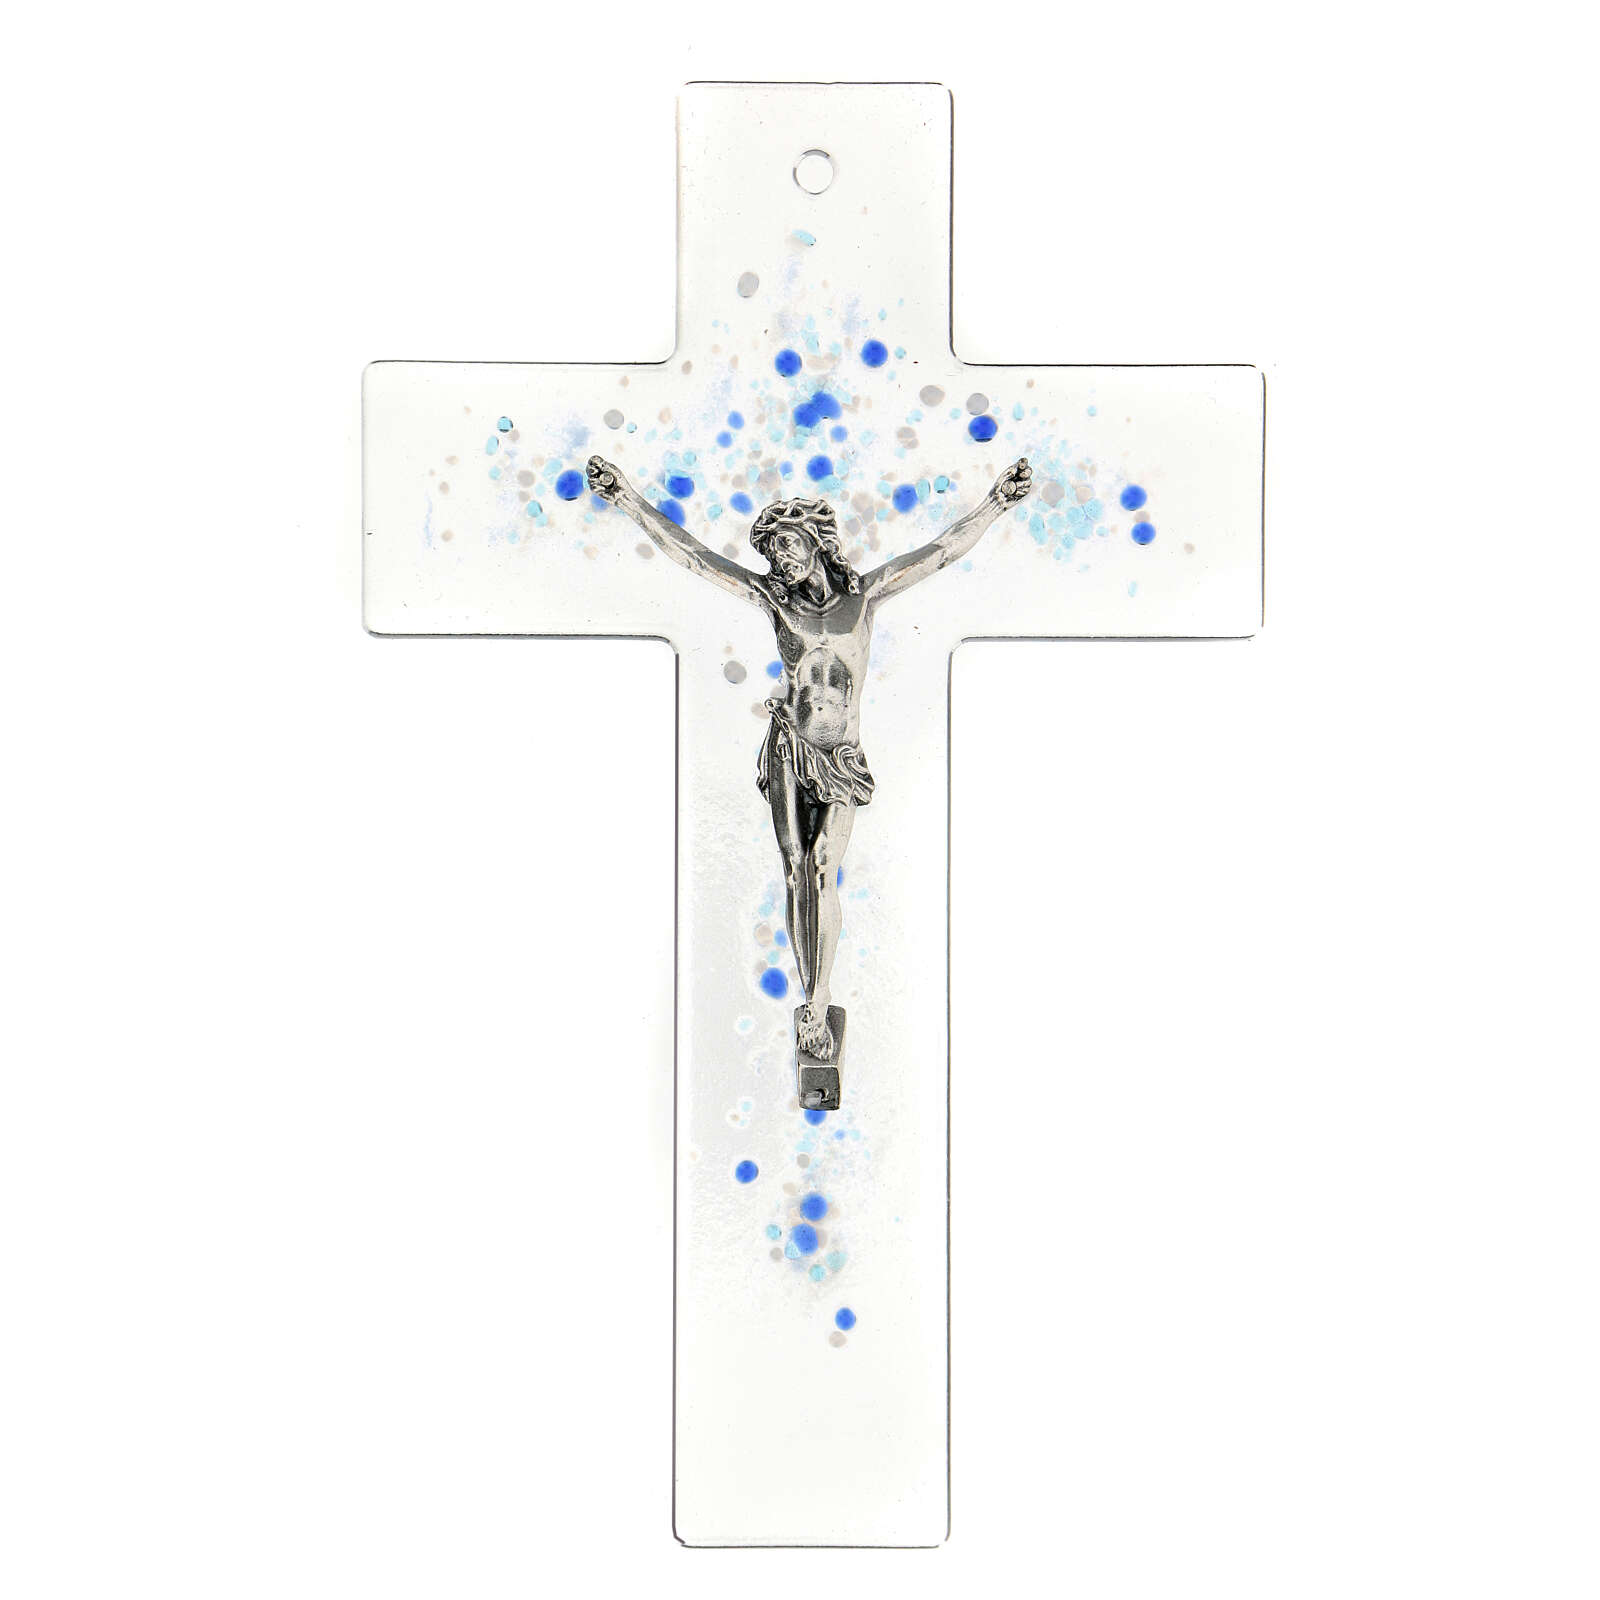 Modern crucifix in Murano glass with blue drops 8x5 inc 4